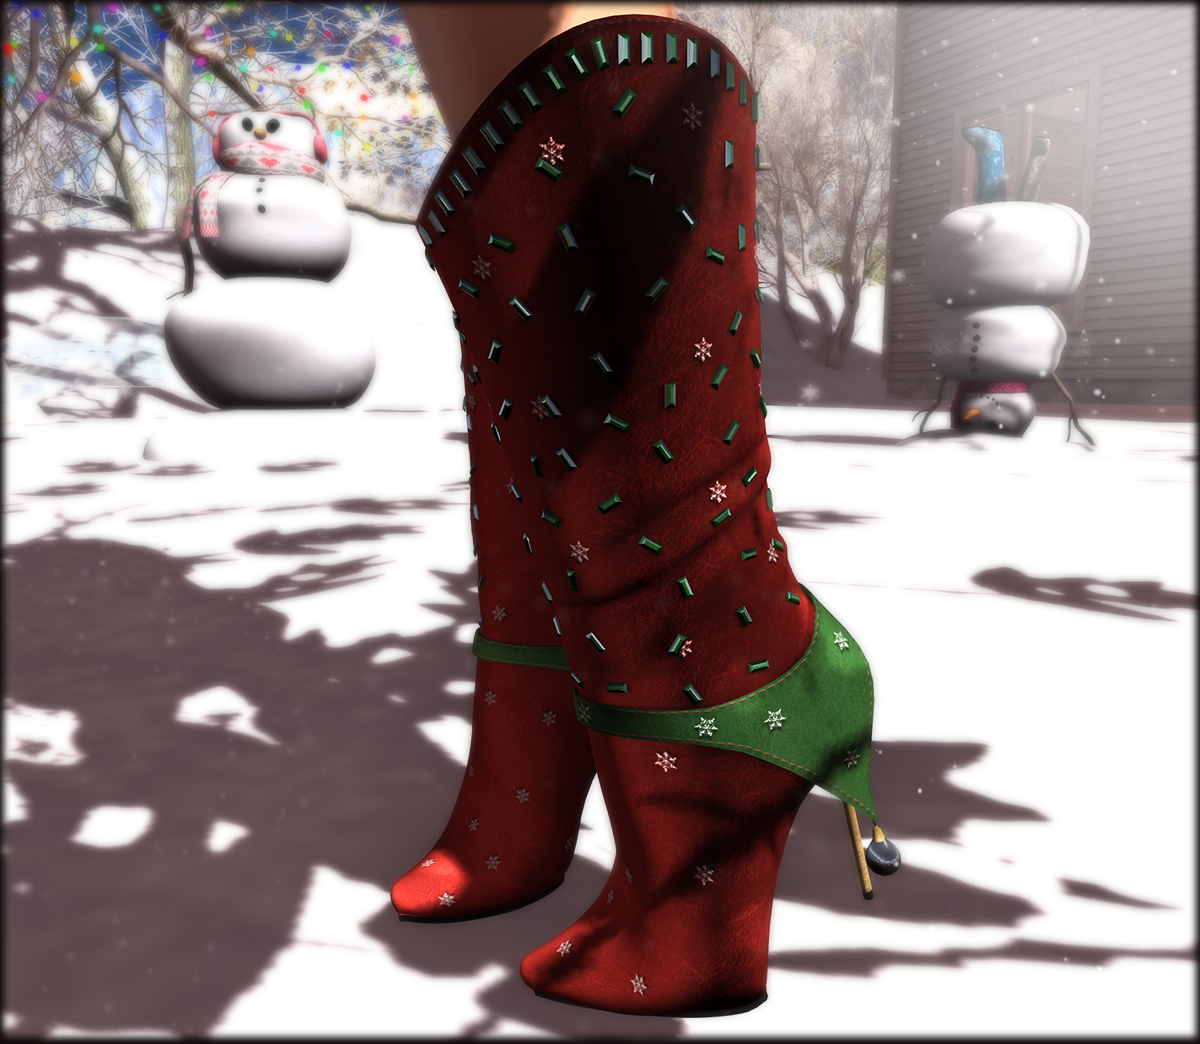 ChicChica Merry Xmas gift on marketplace!